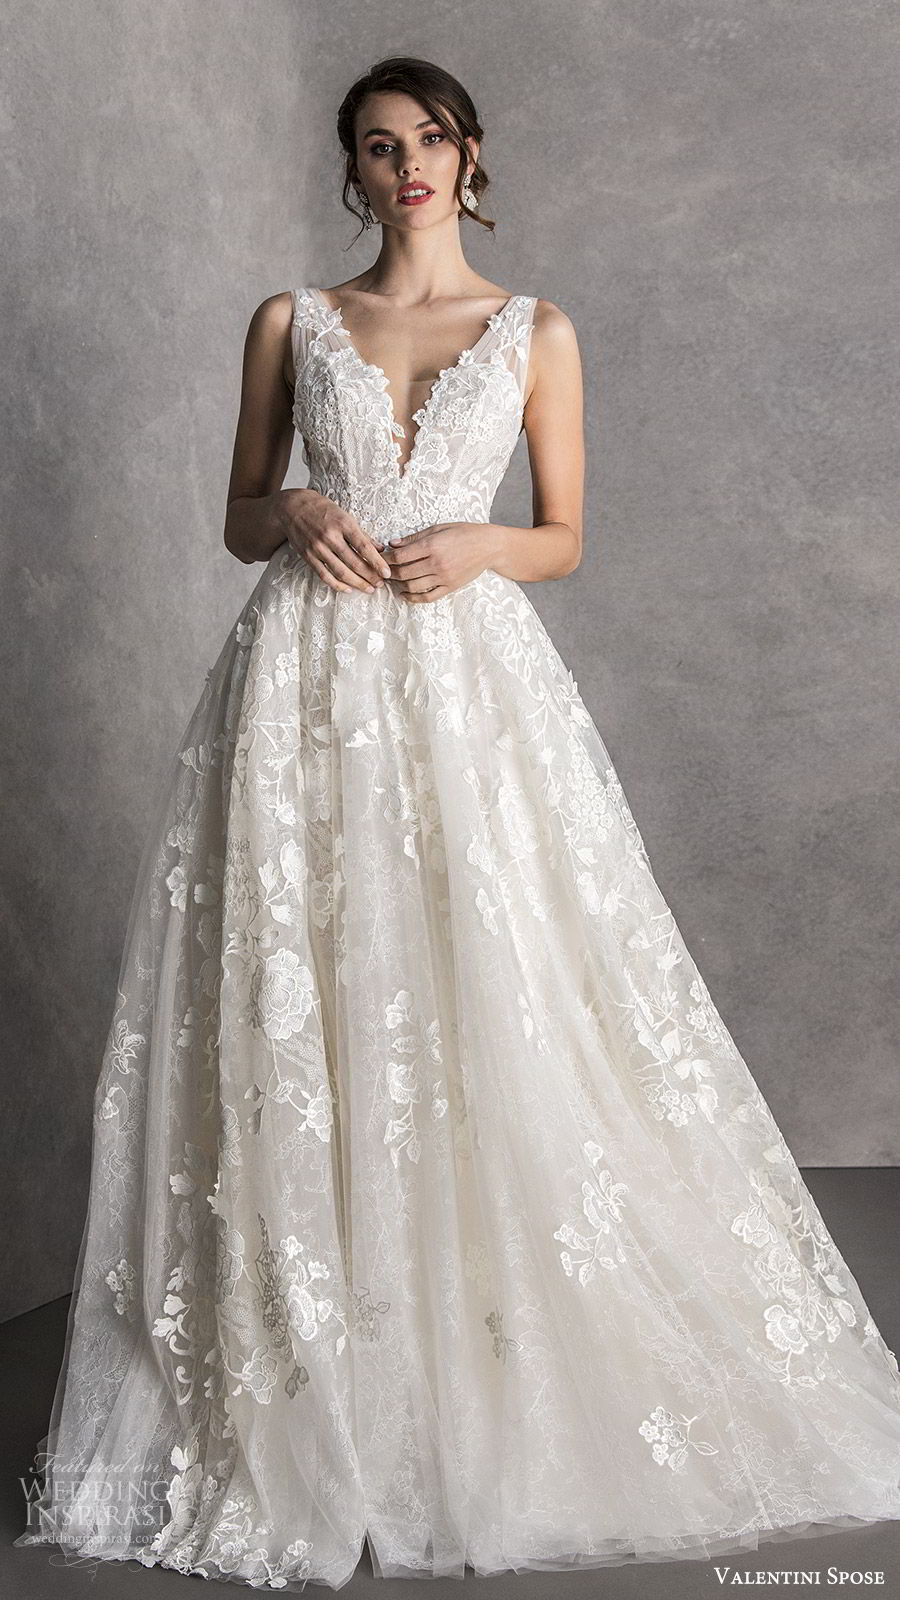 valentini spose spring 2020 bridal sleeveless thick straps deep v neckline fully embellished a line ball gown wedding dress (6) romantic princess mv